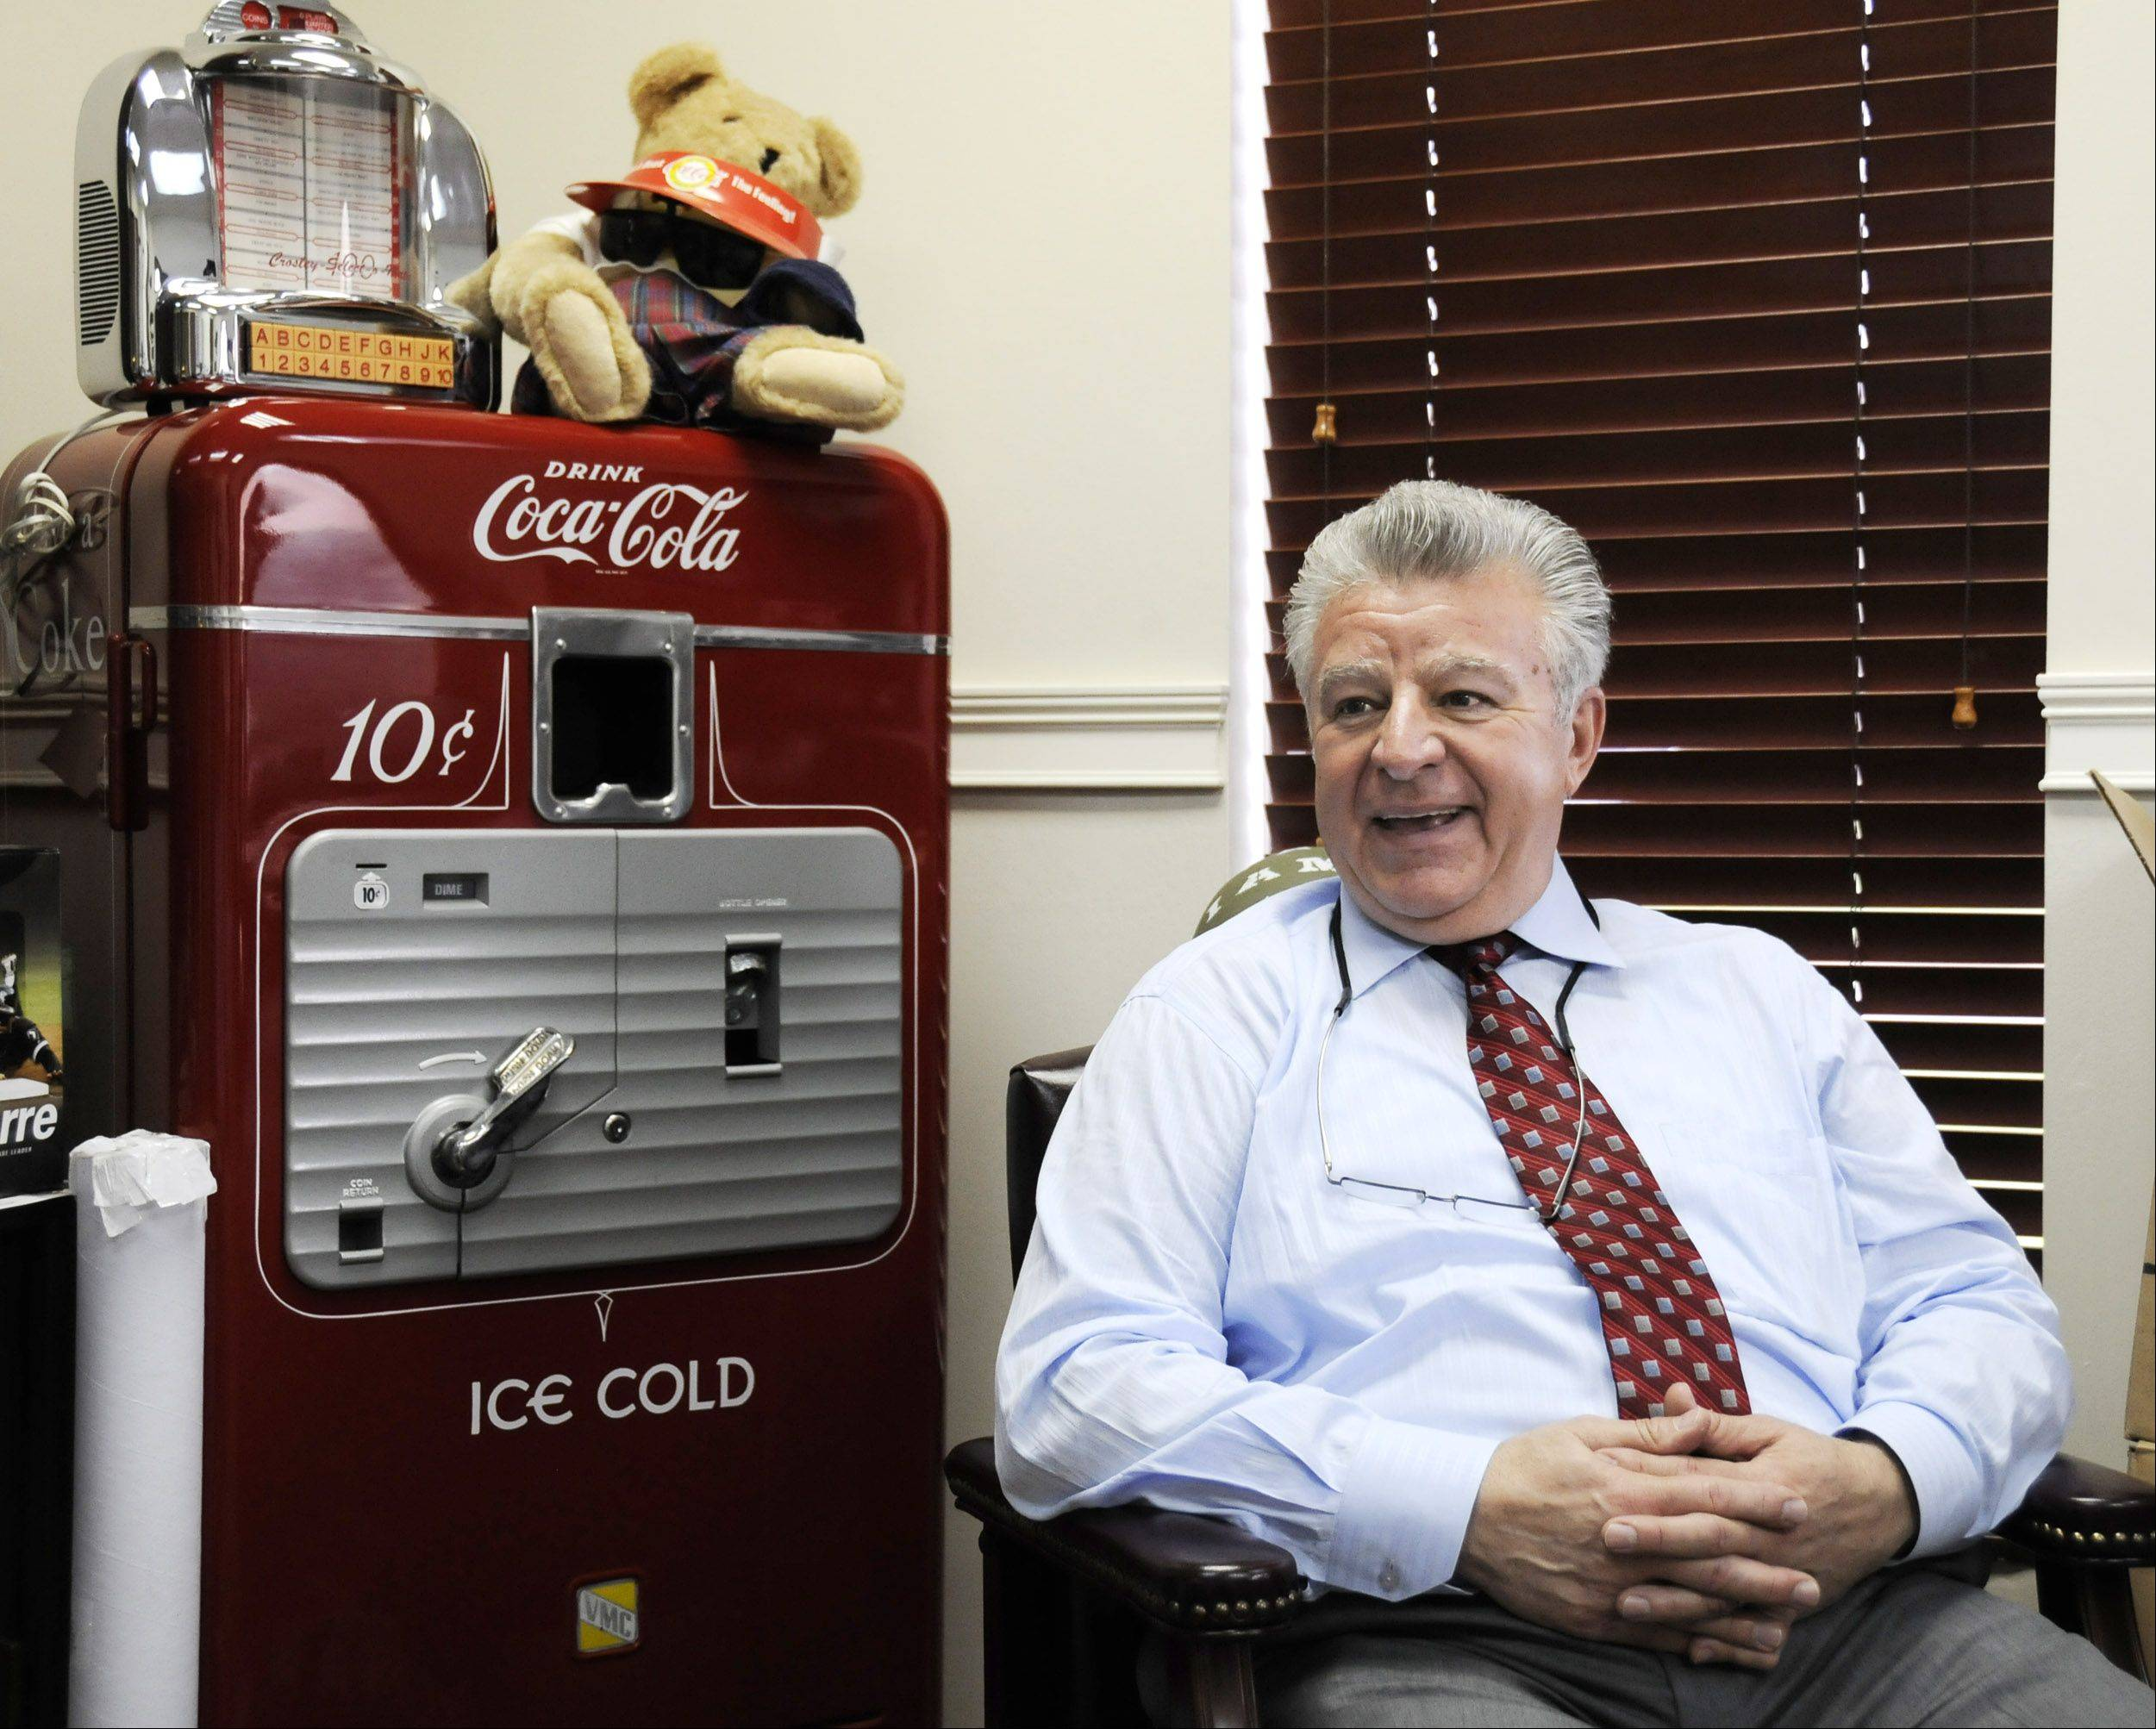 Carol Stream Village President Frank Saverino oversees the village and also runs his own business, which he started out of his home in 1981. The company, which supplies items for vending machines and convenience stores, is now headquartered in Carol Stream's industrial park.